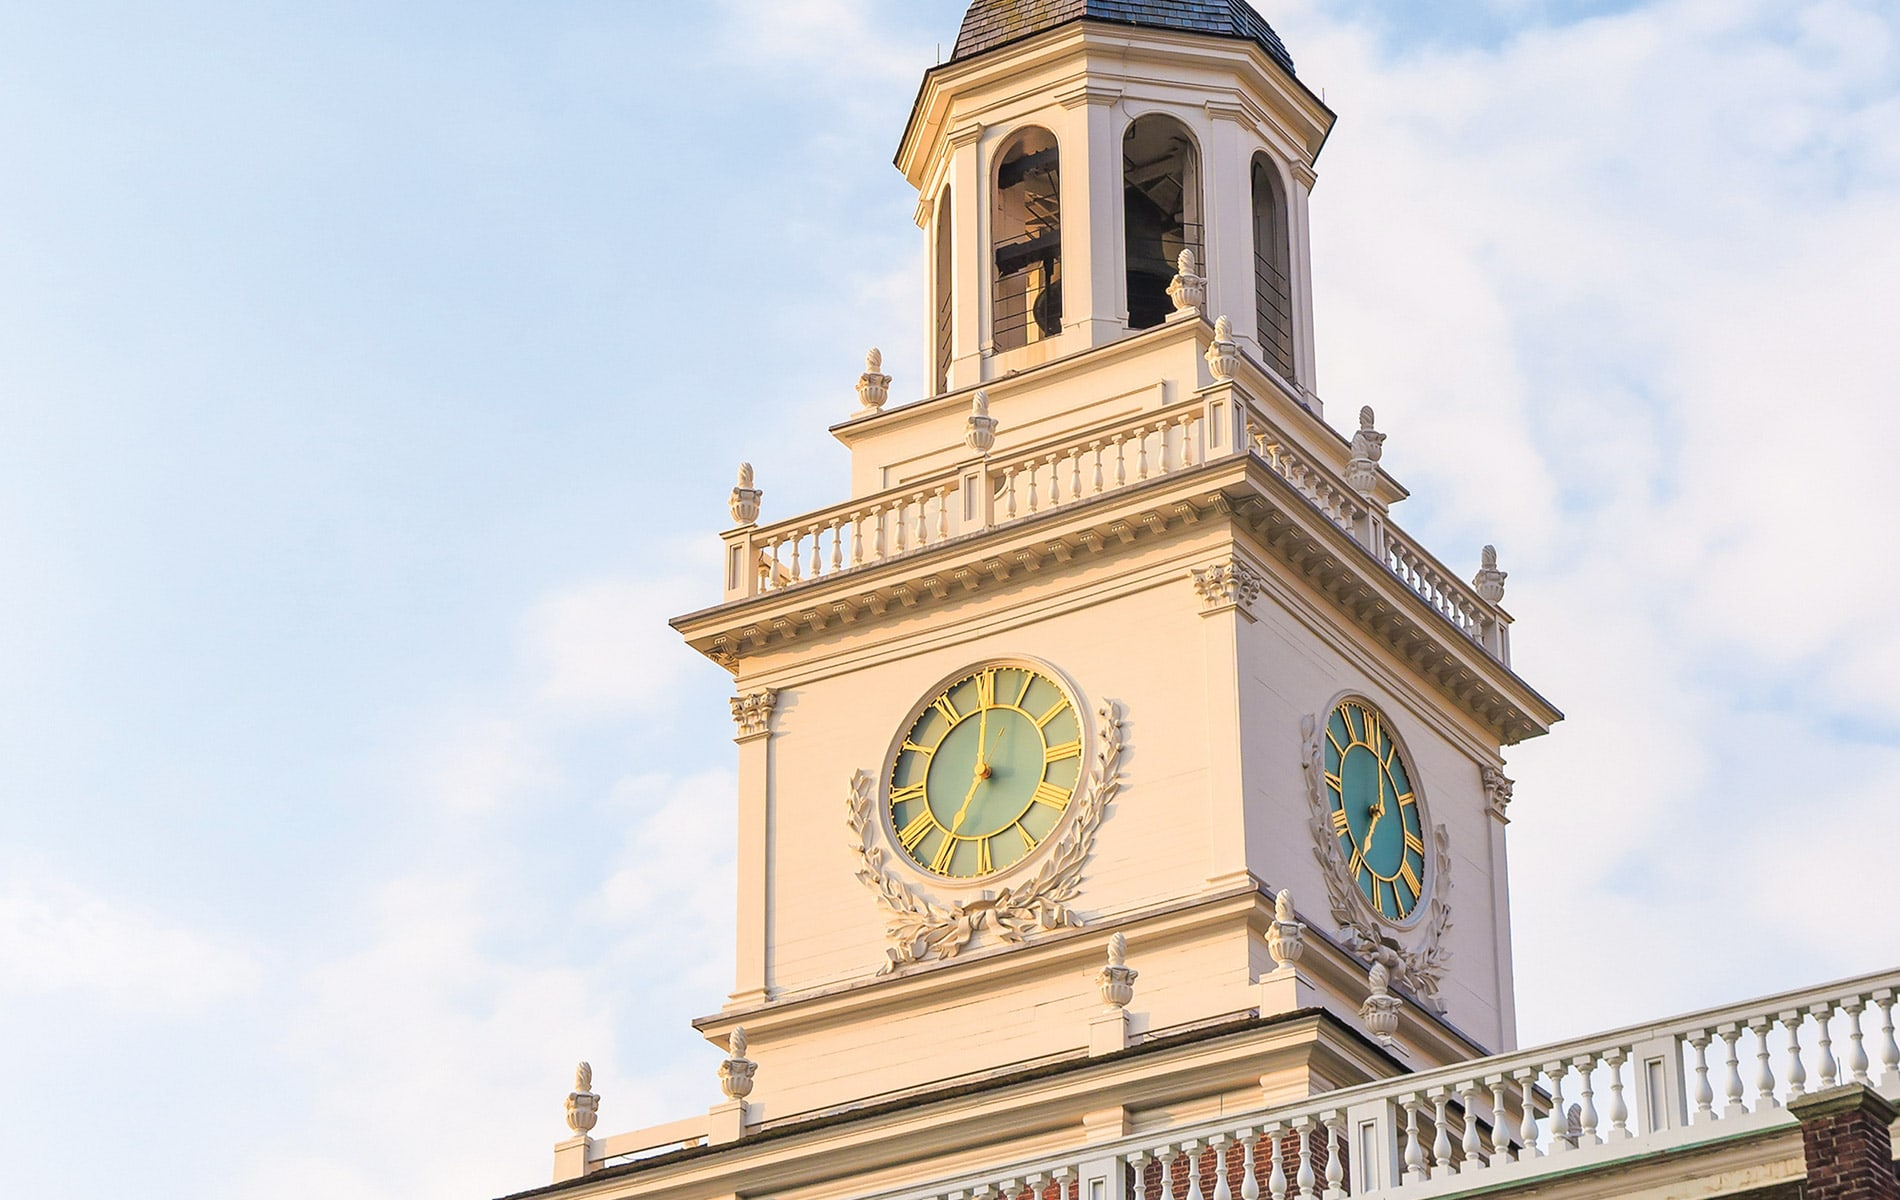 Centennial tower clock for Independence Hall in Philadelphia